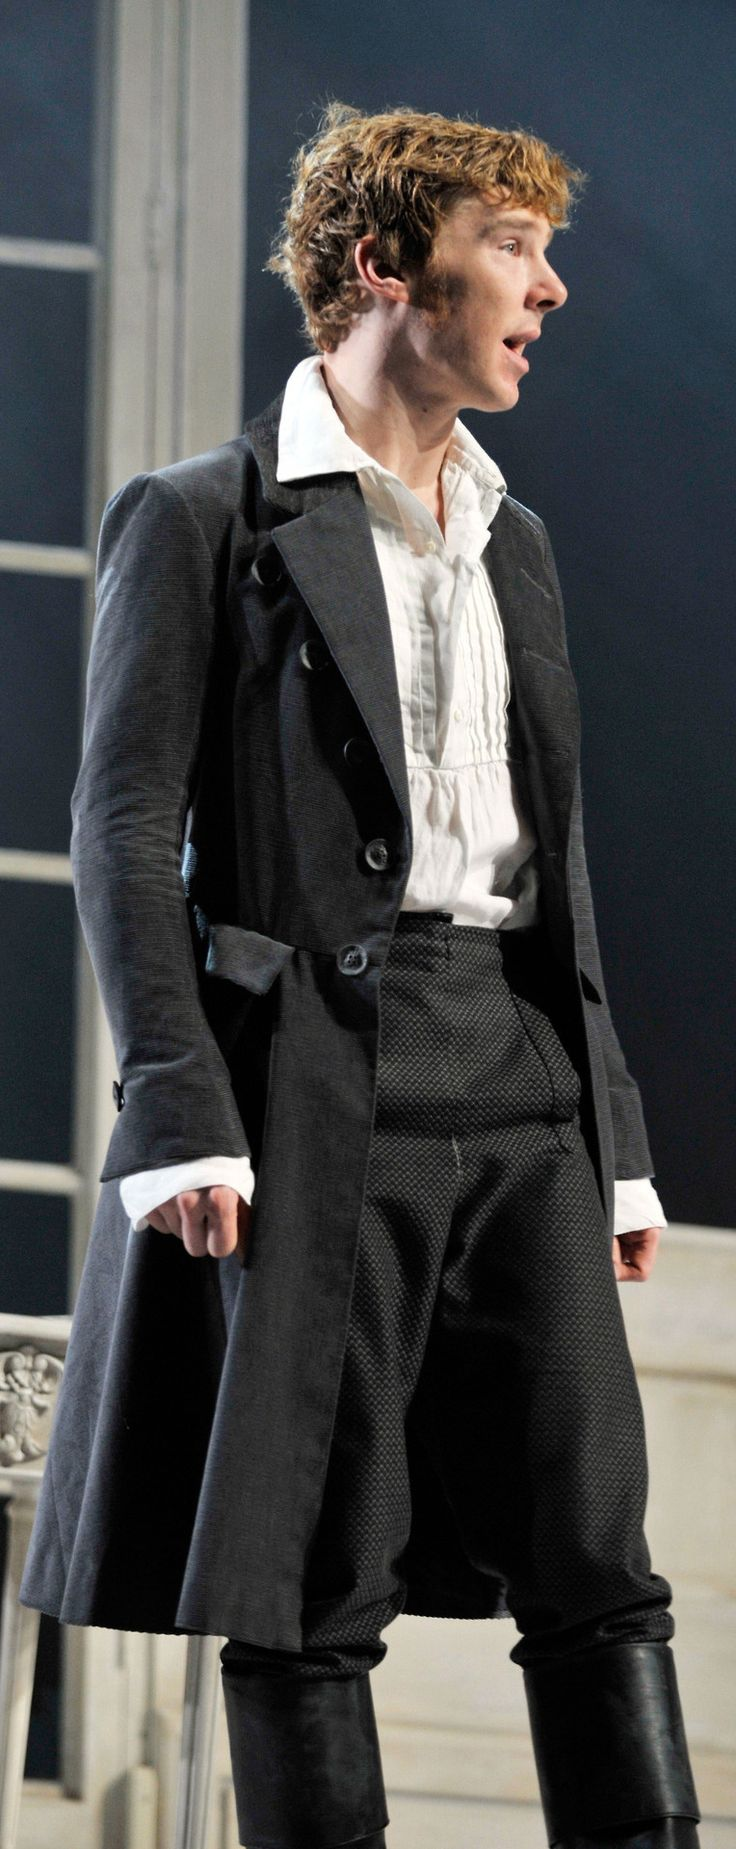 Benedict Cumberbatch 'Frankenstein'. I love this dude in period clothing.